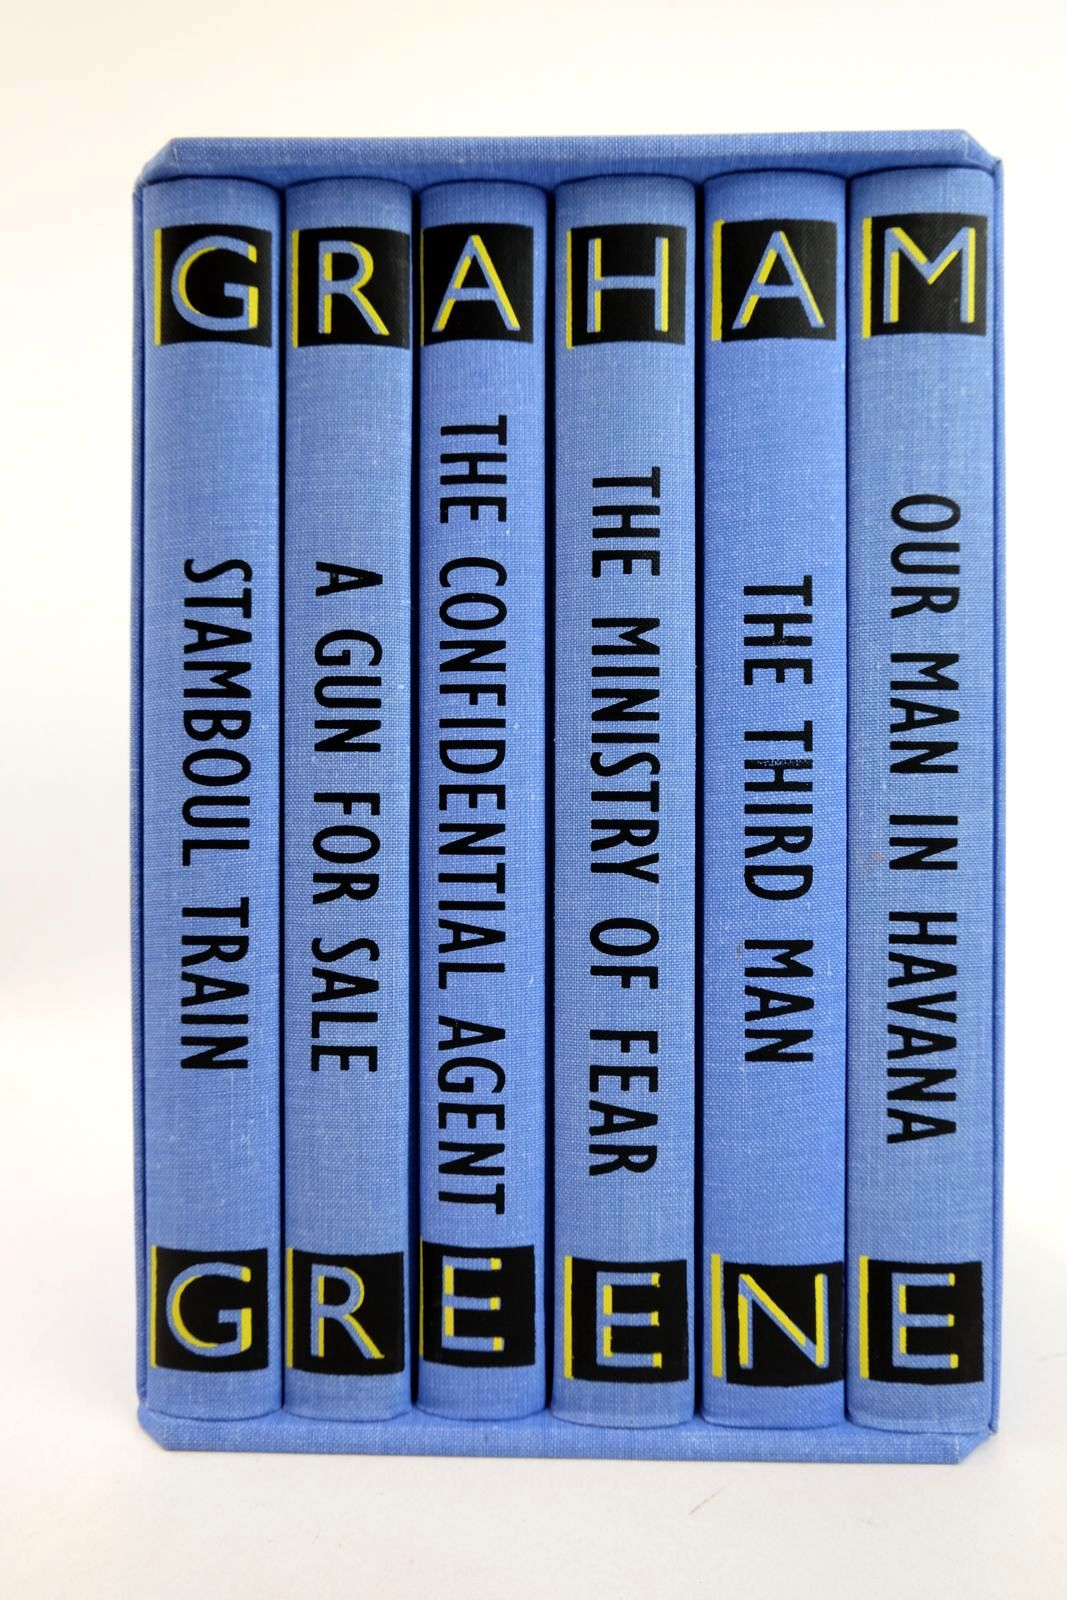 Photo of THE COMPLETE ENTERTAINMENTS (6 VOLUMES) written by Greene, Graham illustrated by Grandfield, Geoff published by Folio Society (STOCK CODE: 2133174)  for sale by Stella & Rose's Books